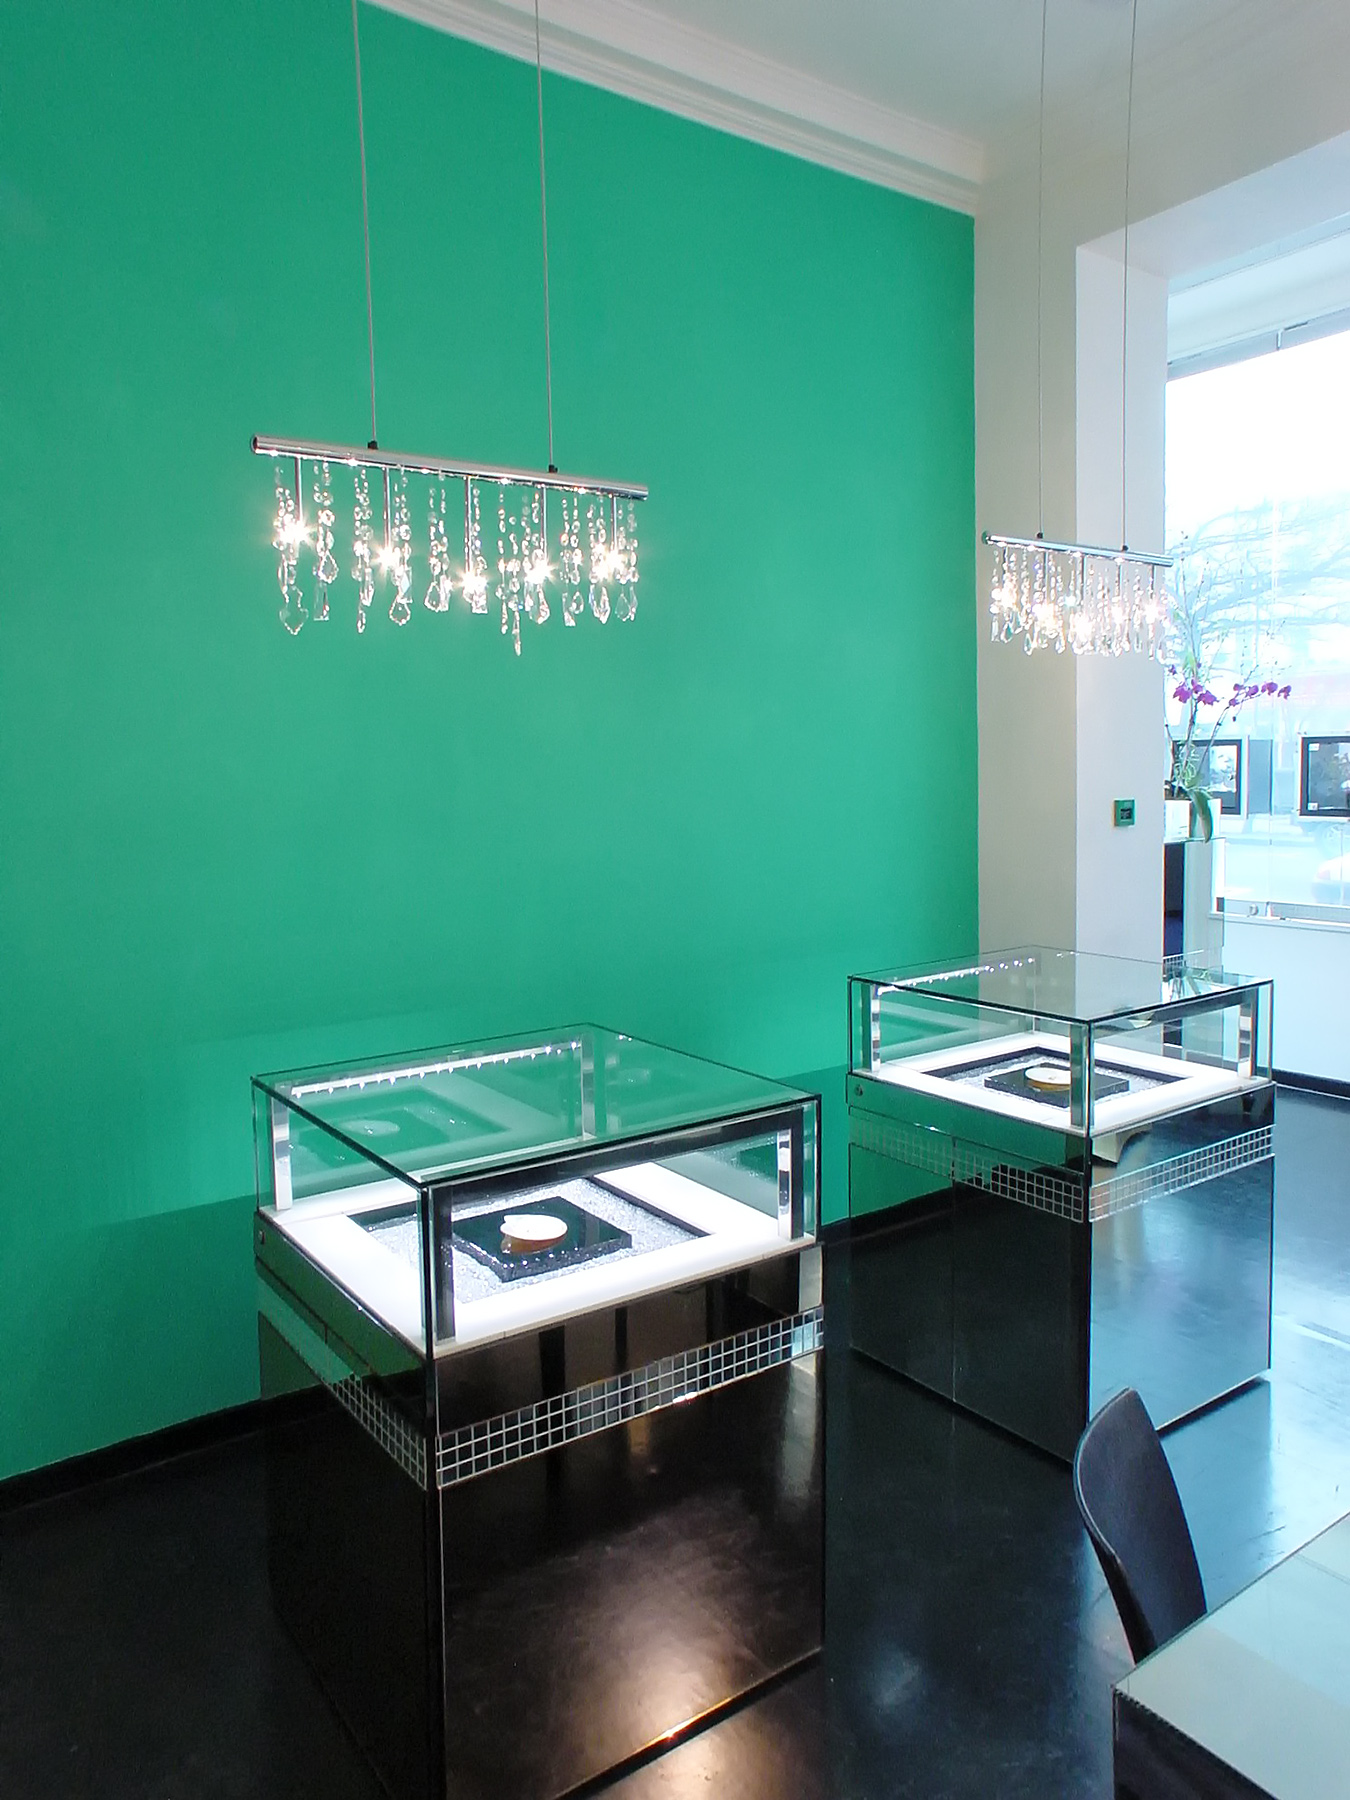 Wint & Kidd - Jewelry and Diamonds Shop